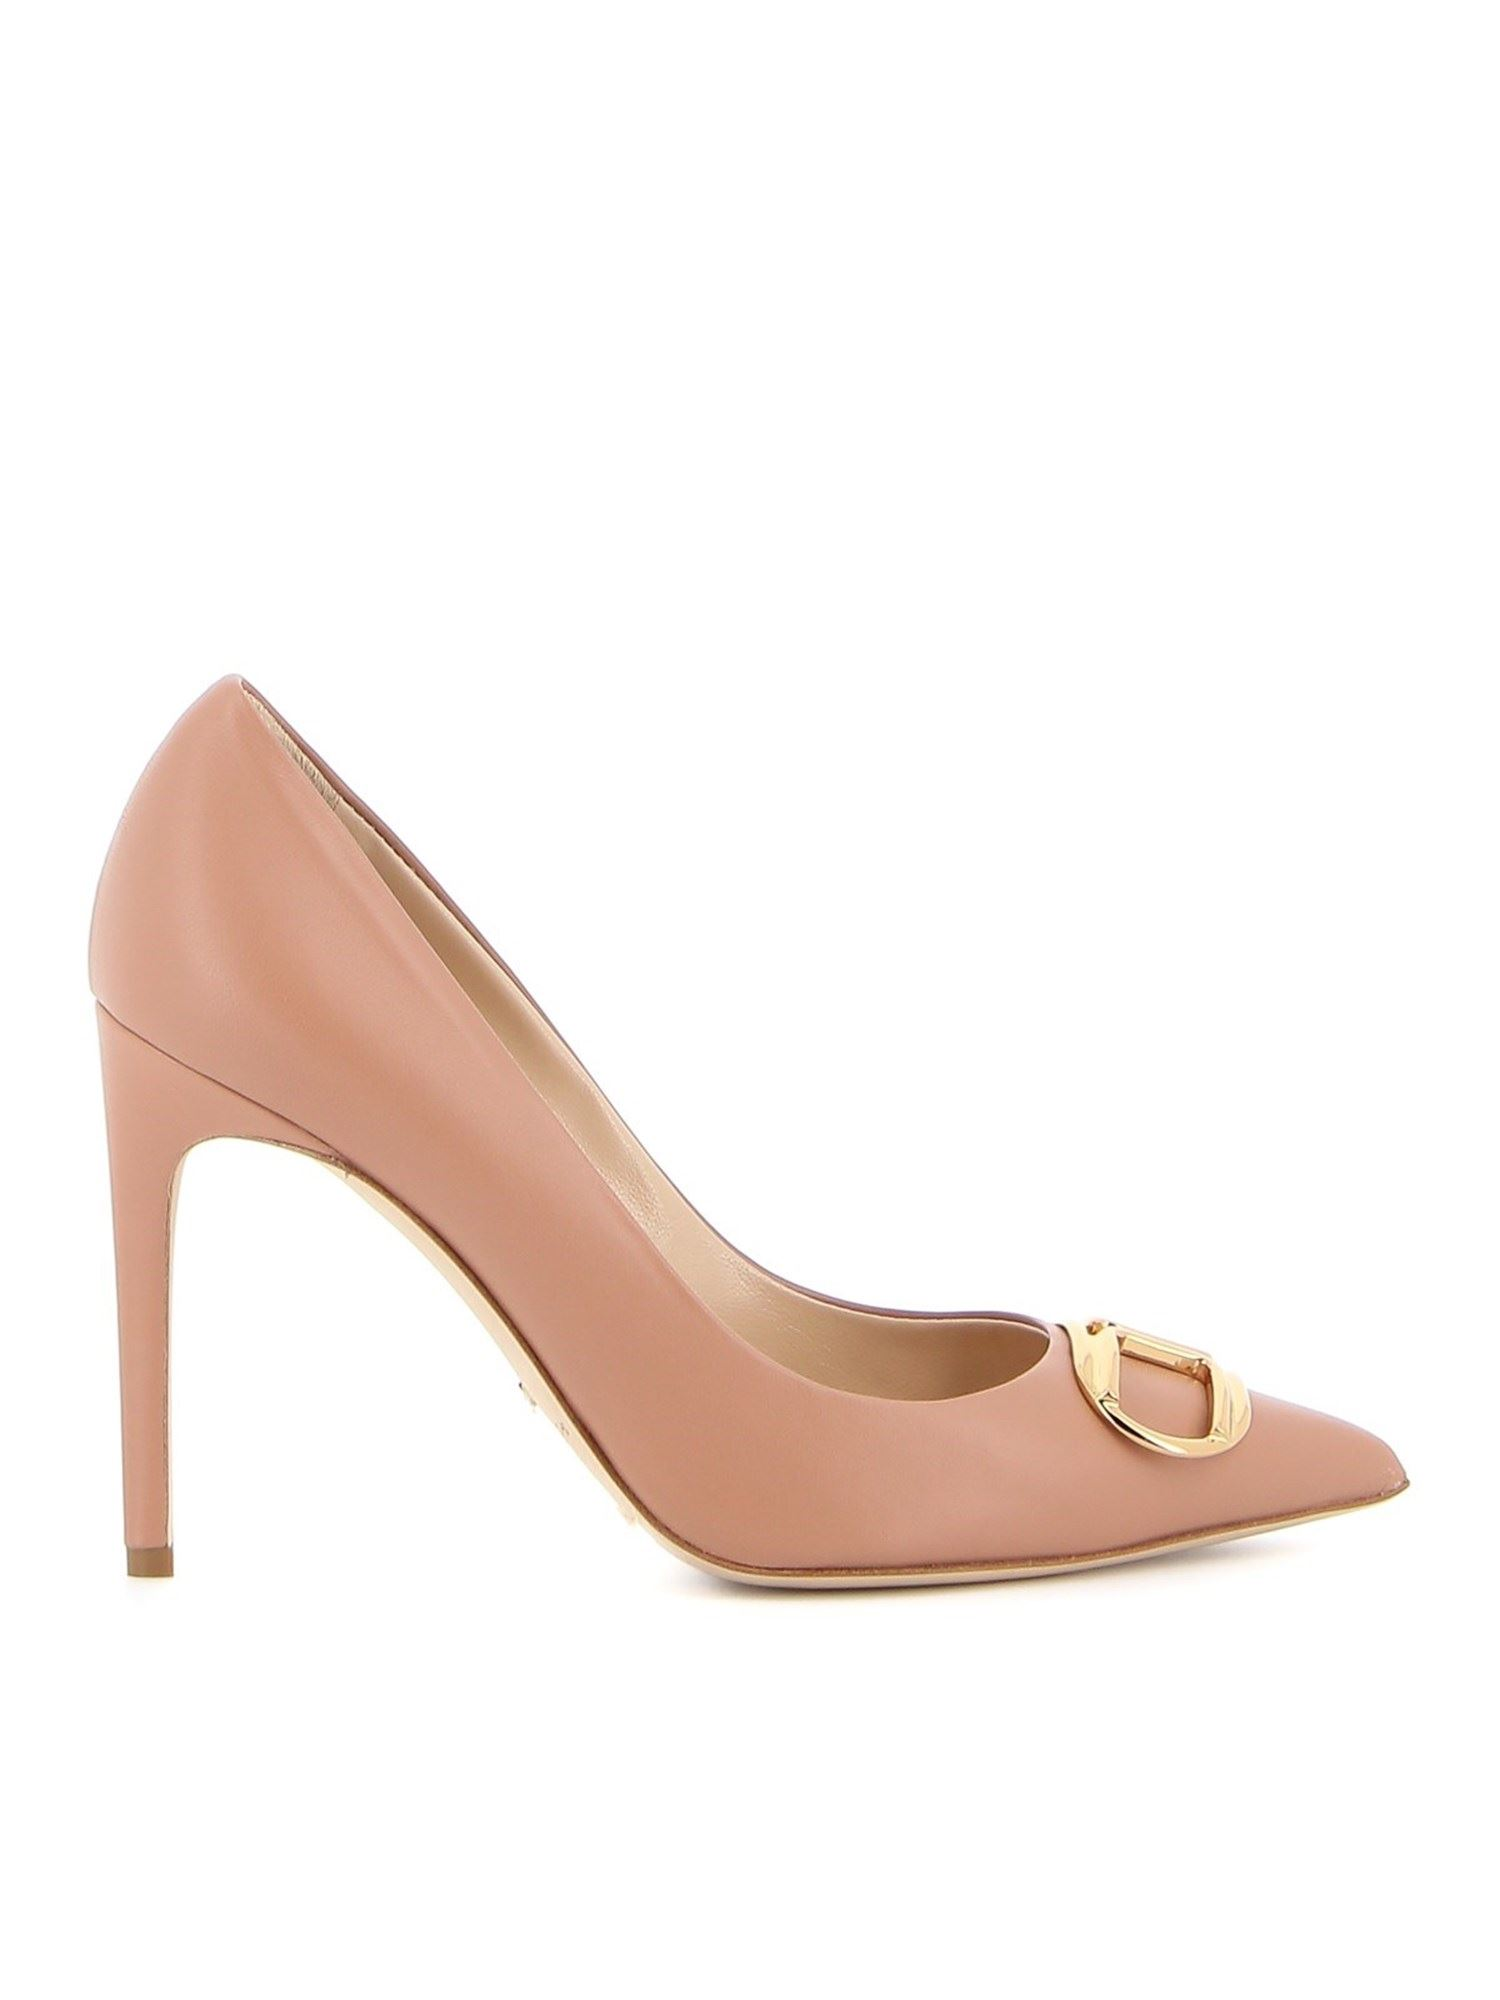 Elisabetta Franchi LEATHER PUMPS WITH LOGO BUCKLE IN PINK